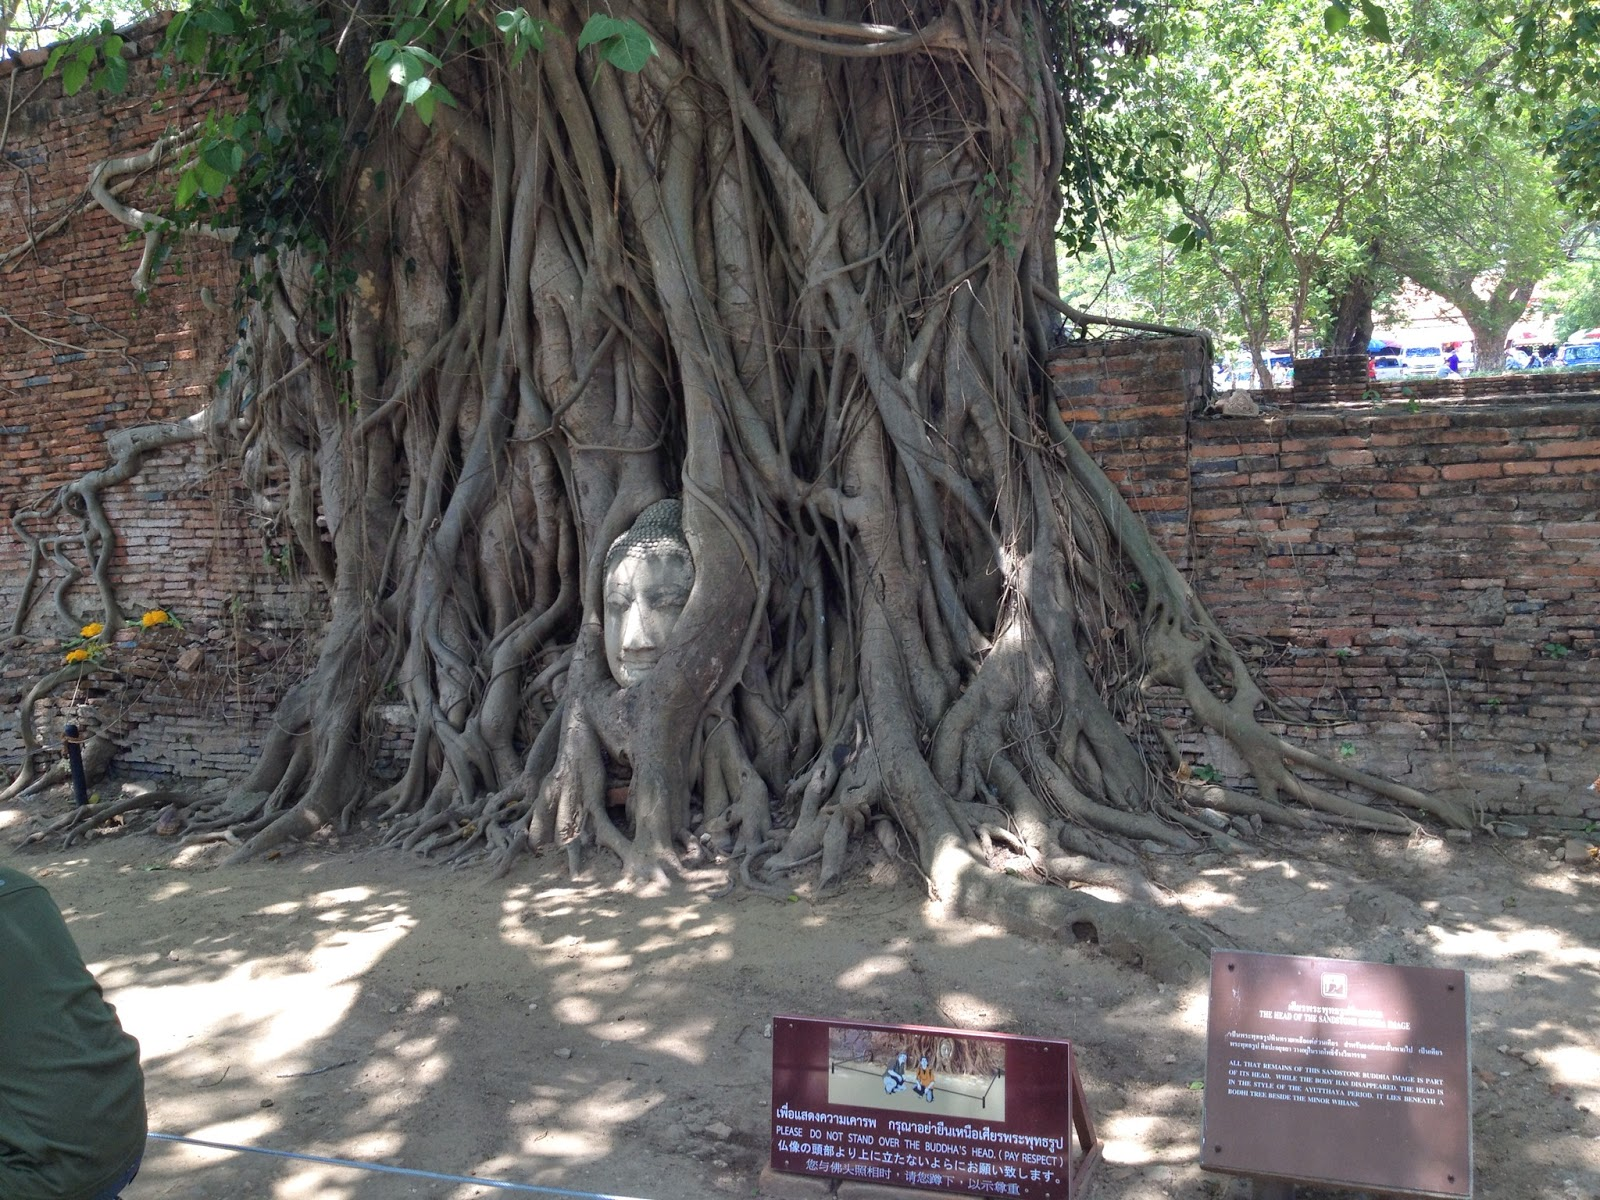 Ayutthaya - Wat Phra Mahathat, known for a tree that has grown around a Buddha head